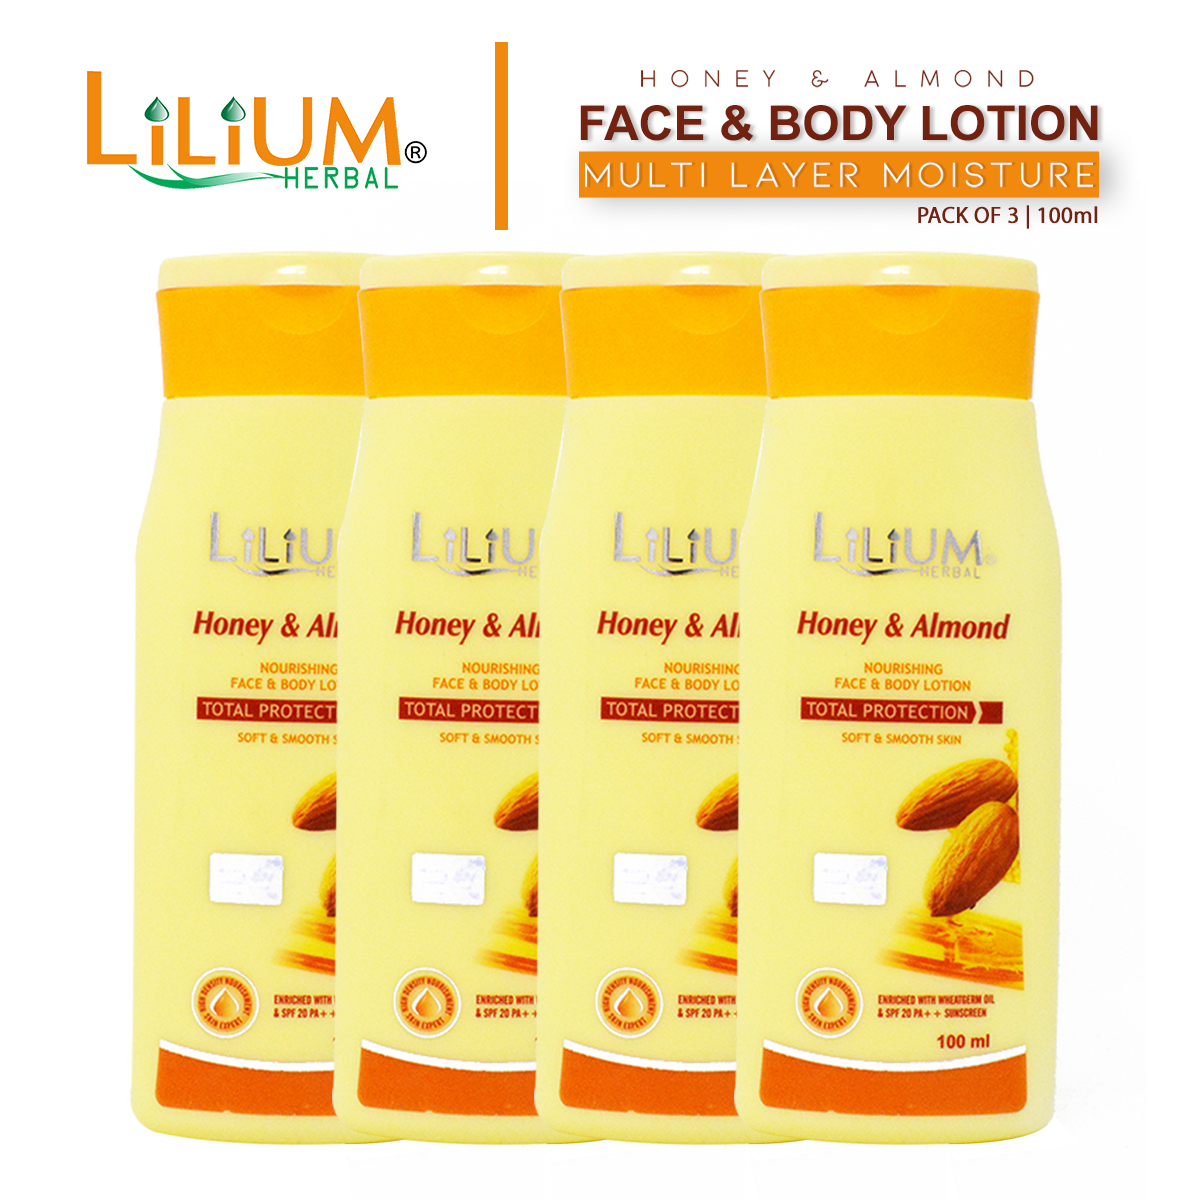 Lilium Herbal Honey & Almond Face & Body Lotion 100ml Pack of 4